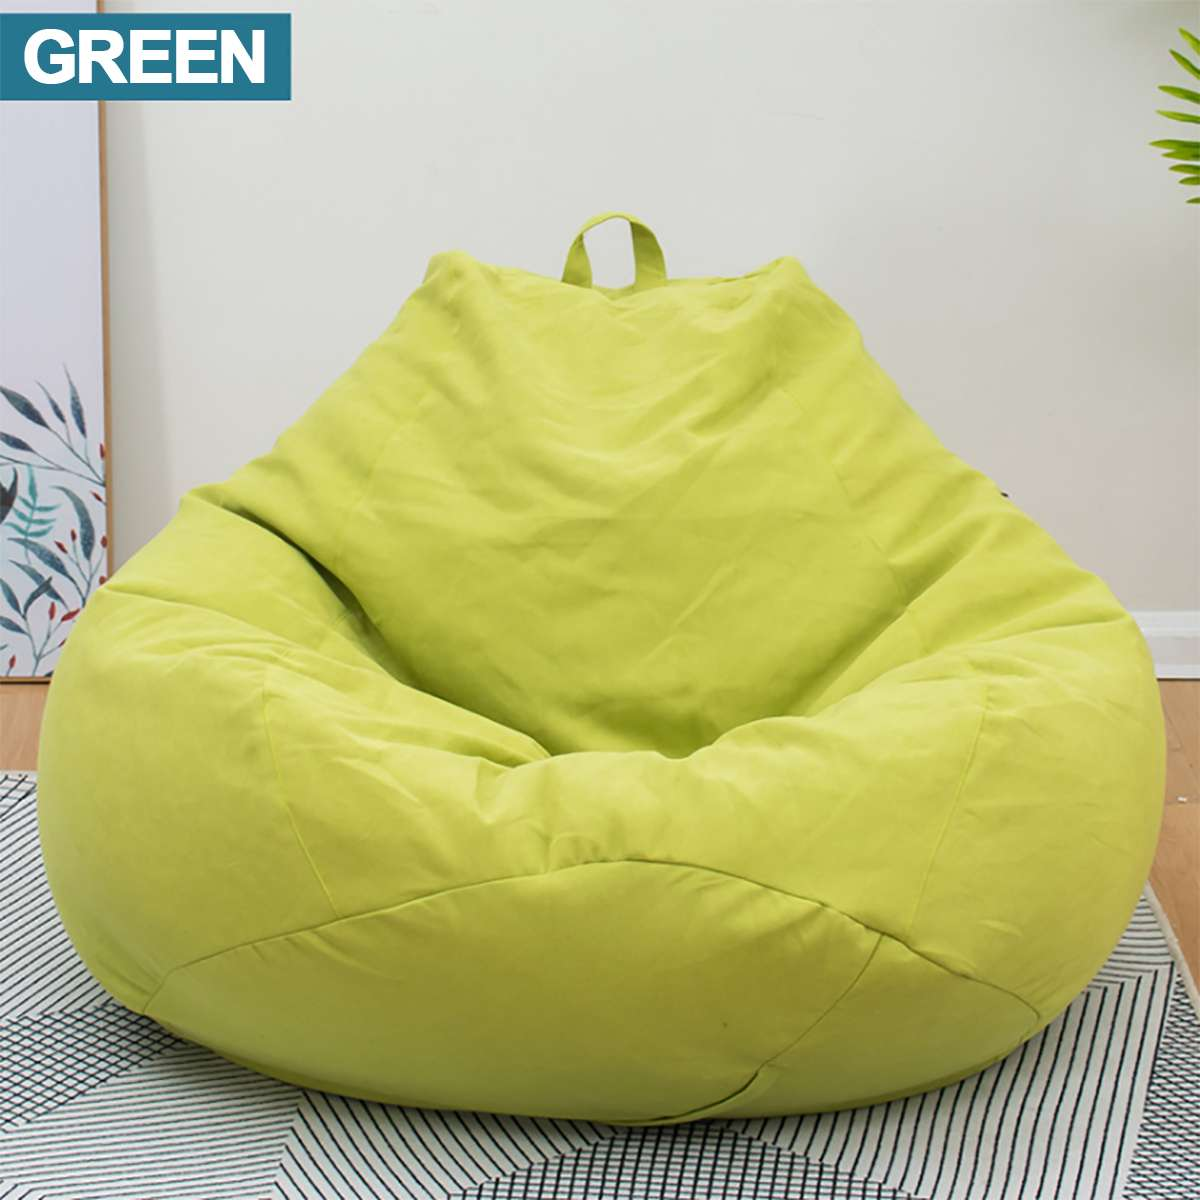 Remarkable Us 13 55 43 Off Green Lazy Beanbag Sofas Waterproof Stuffed Animal Storage Toy Bean Bag Solid Color Chair Cover Beanbag Sofas Without Lining In Bean Spiritservingveterans Wood Chair Design Ideas Spiritservingveteransorg